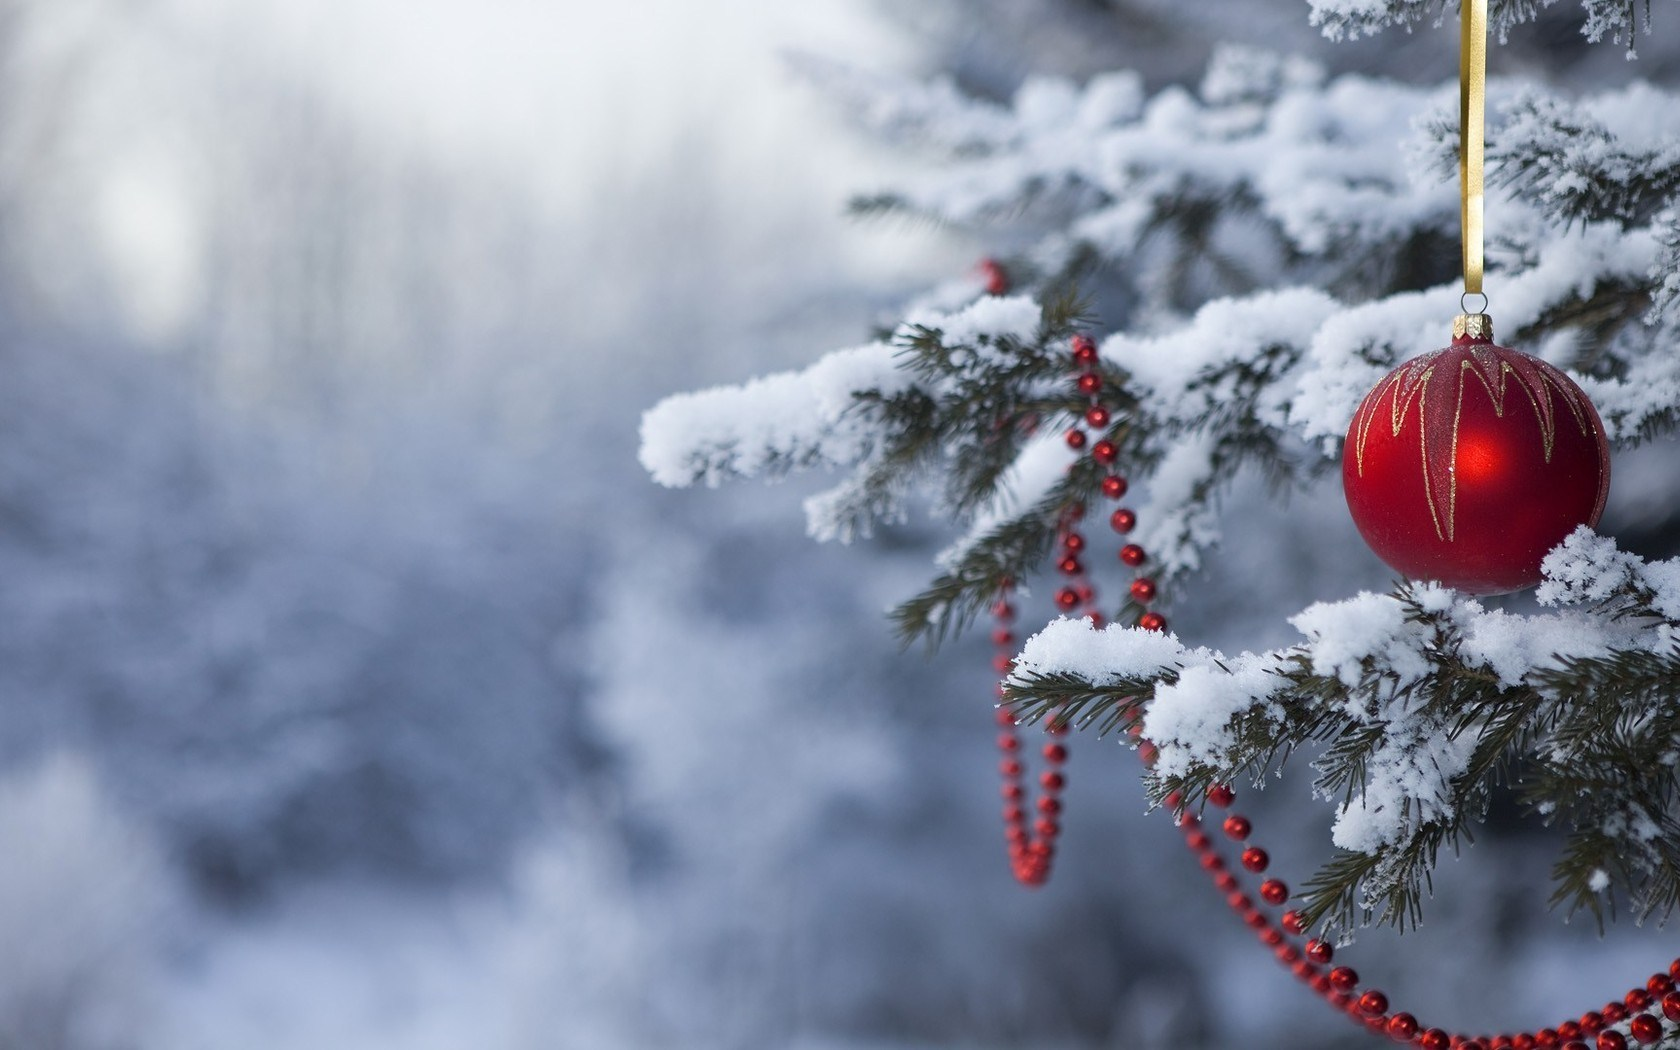 Collection of Christmas Tree Snow Wallpaper on HDWallpapers